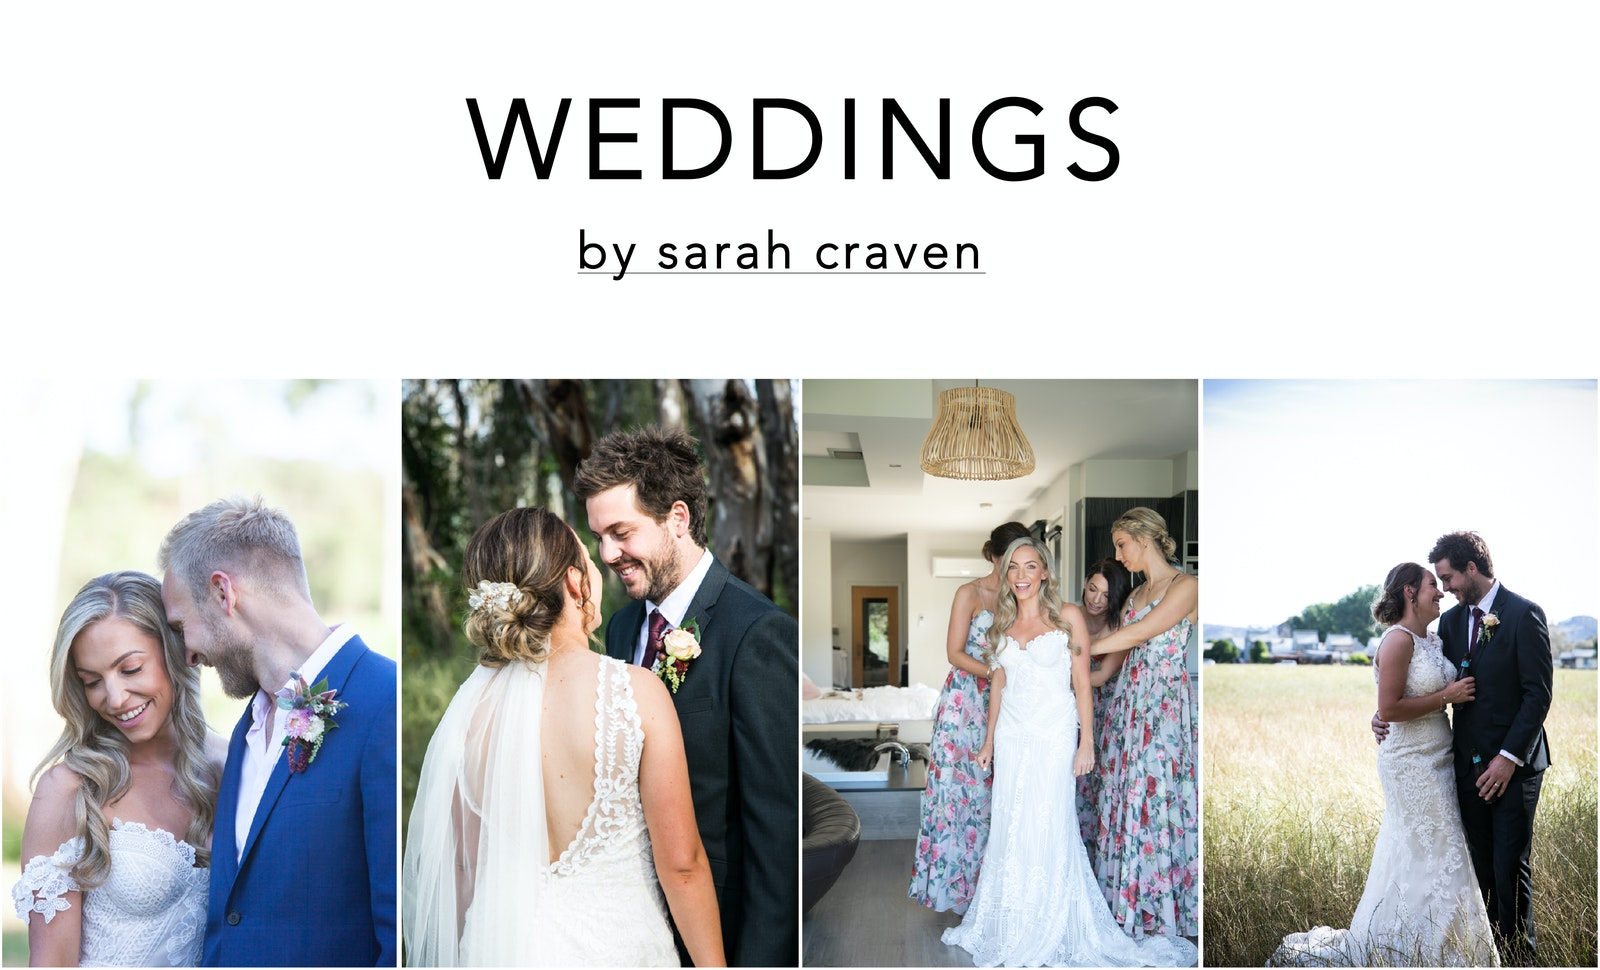 Microsoft Word - SC_Full wedding packages_2019.docx